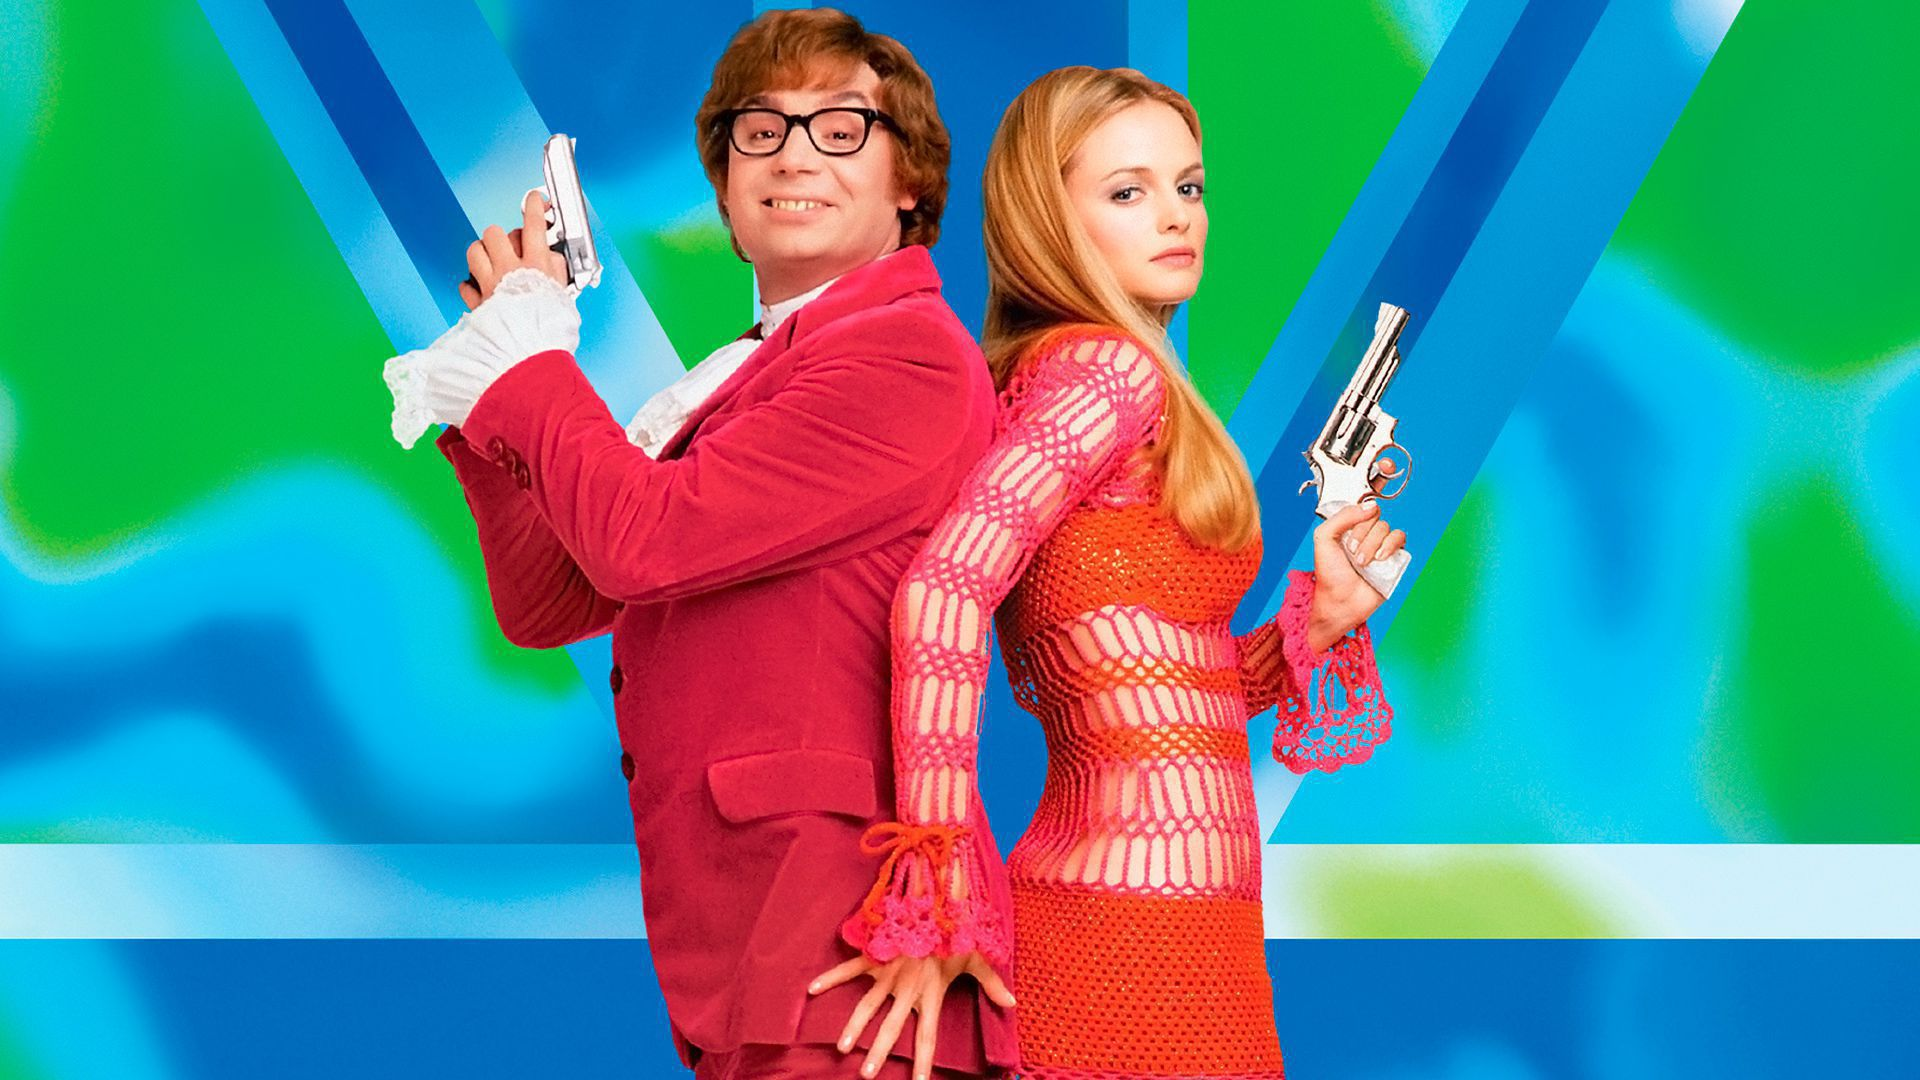 Austin Powers In High Resolution